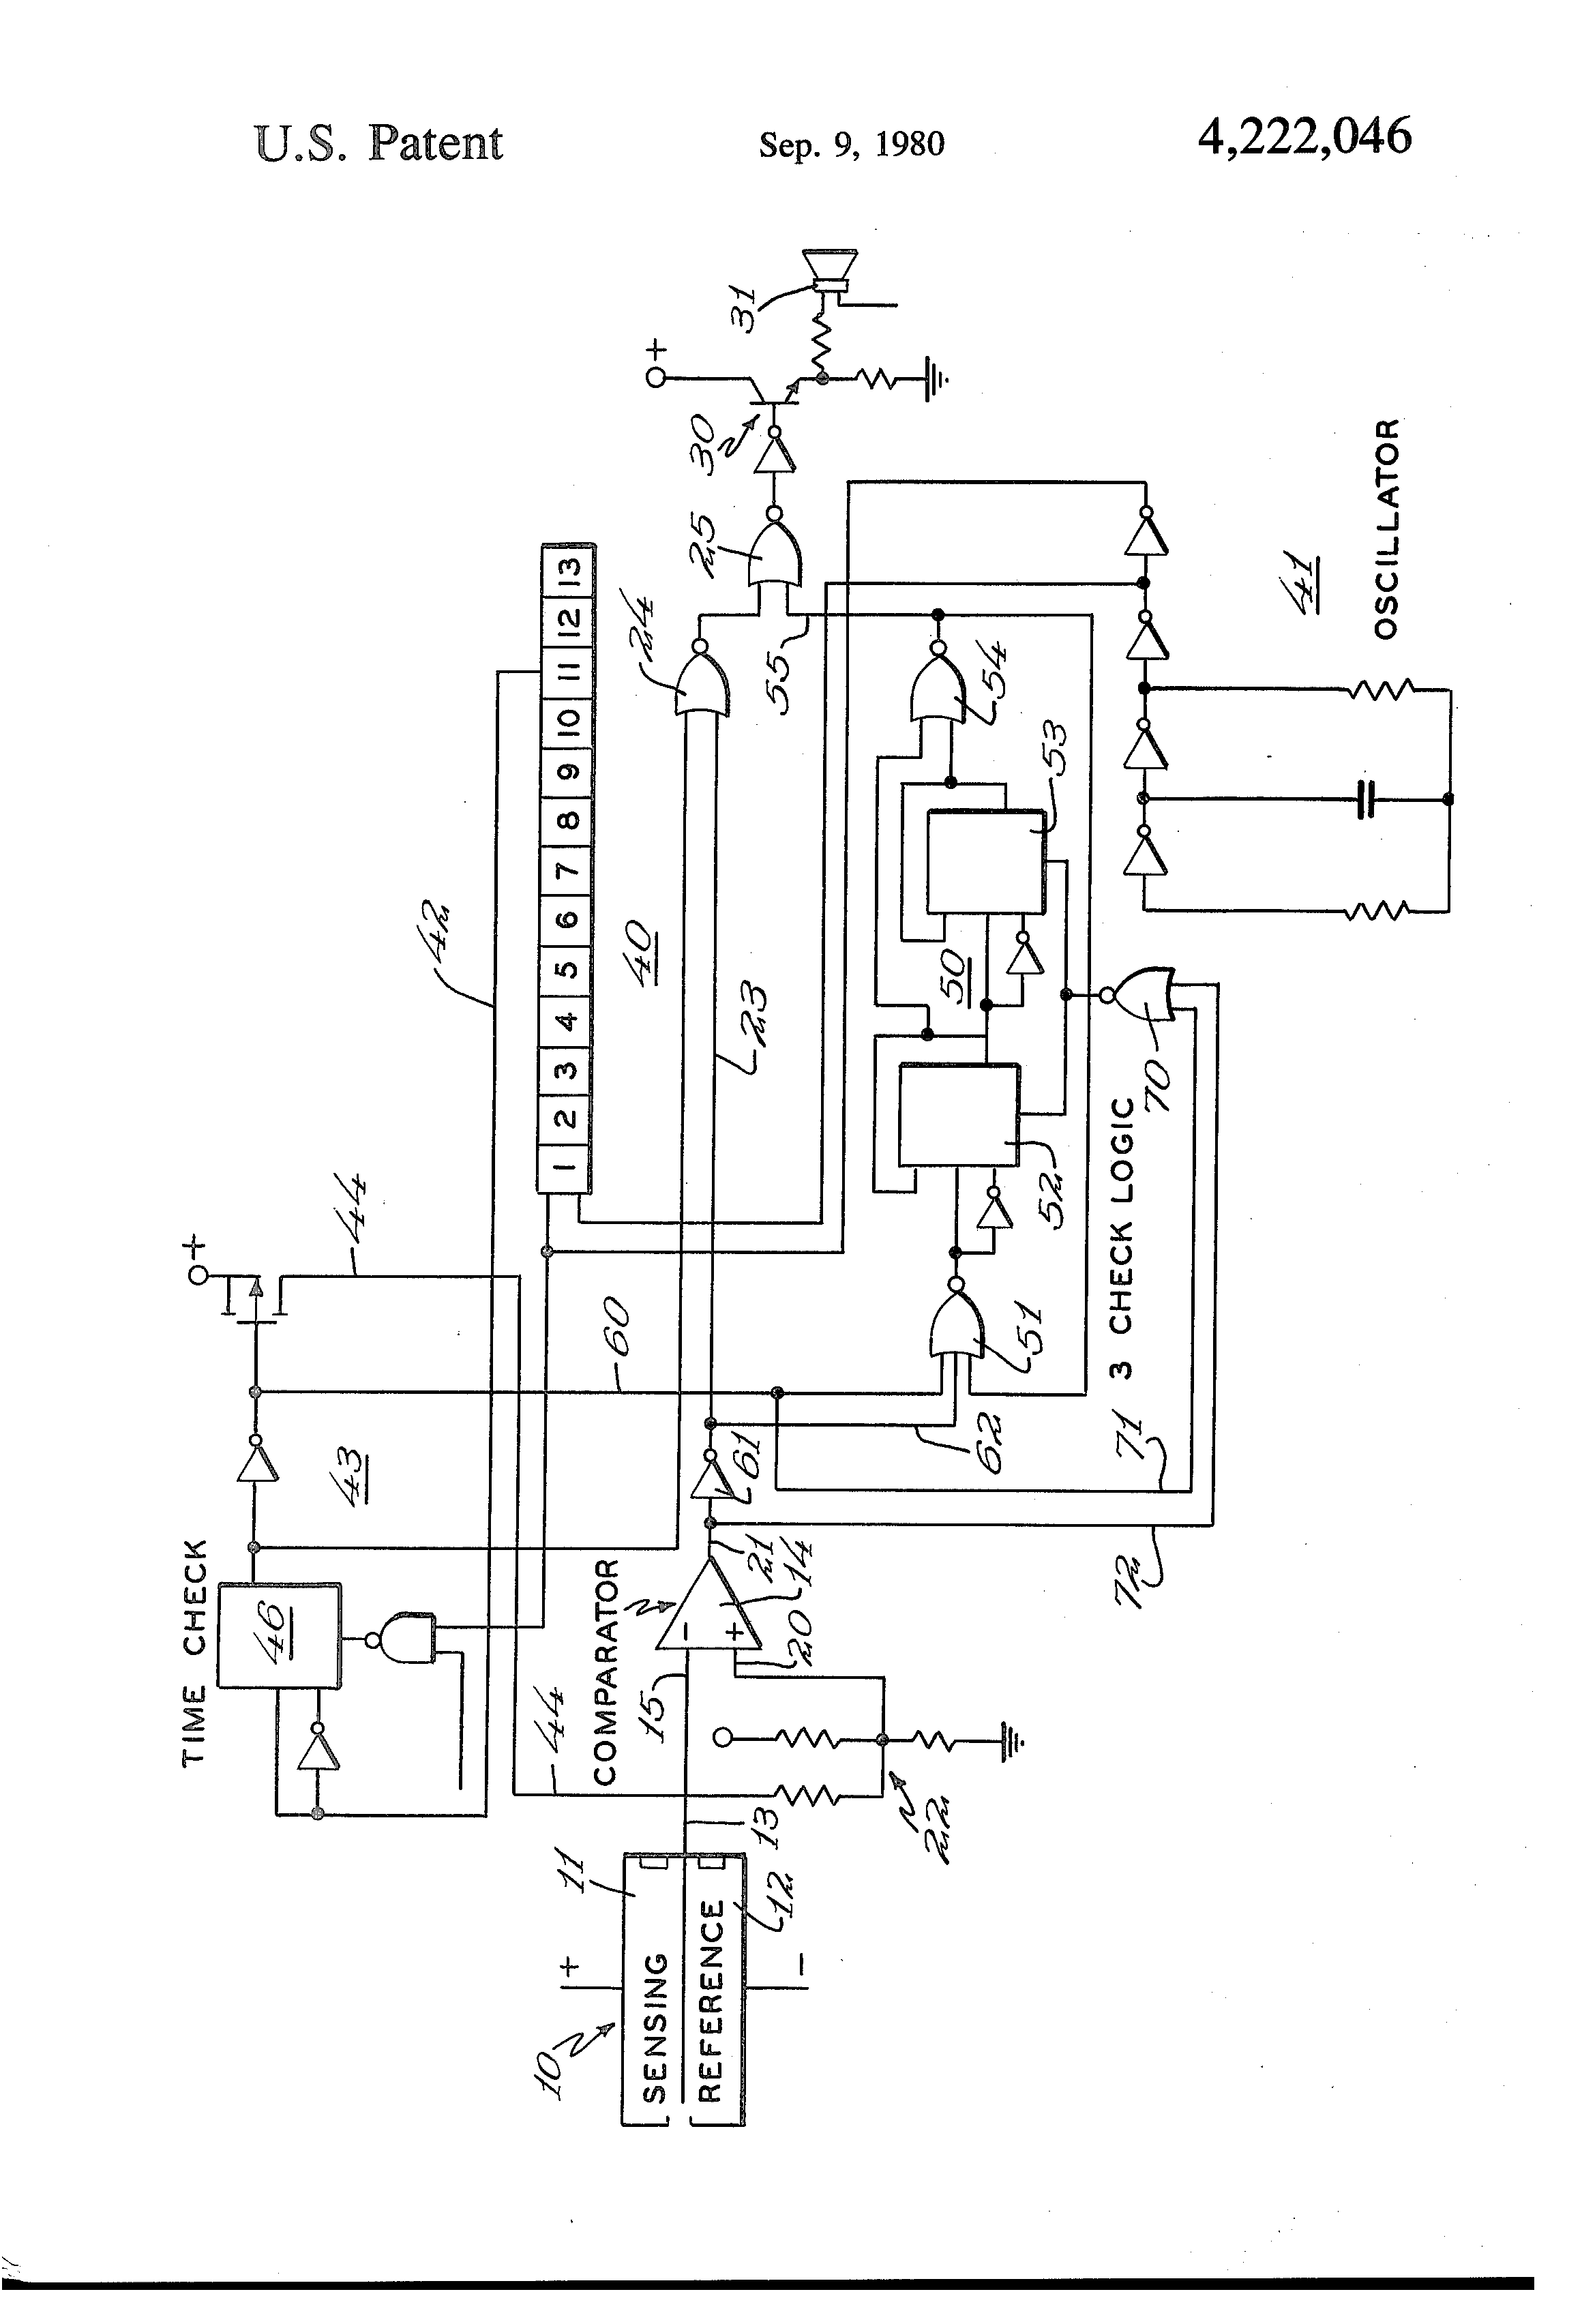 Smoke Detector Circuit Diagram Including Patent Us4792797 Us4222046 Abnormal Condition Responsive Means With Periodic